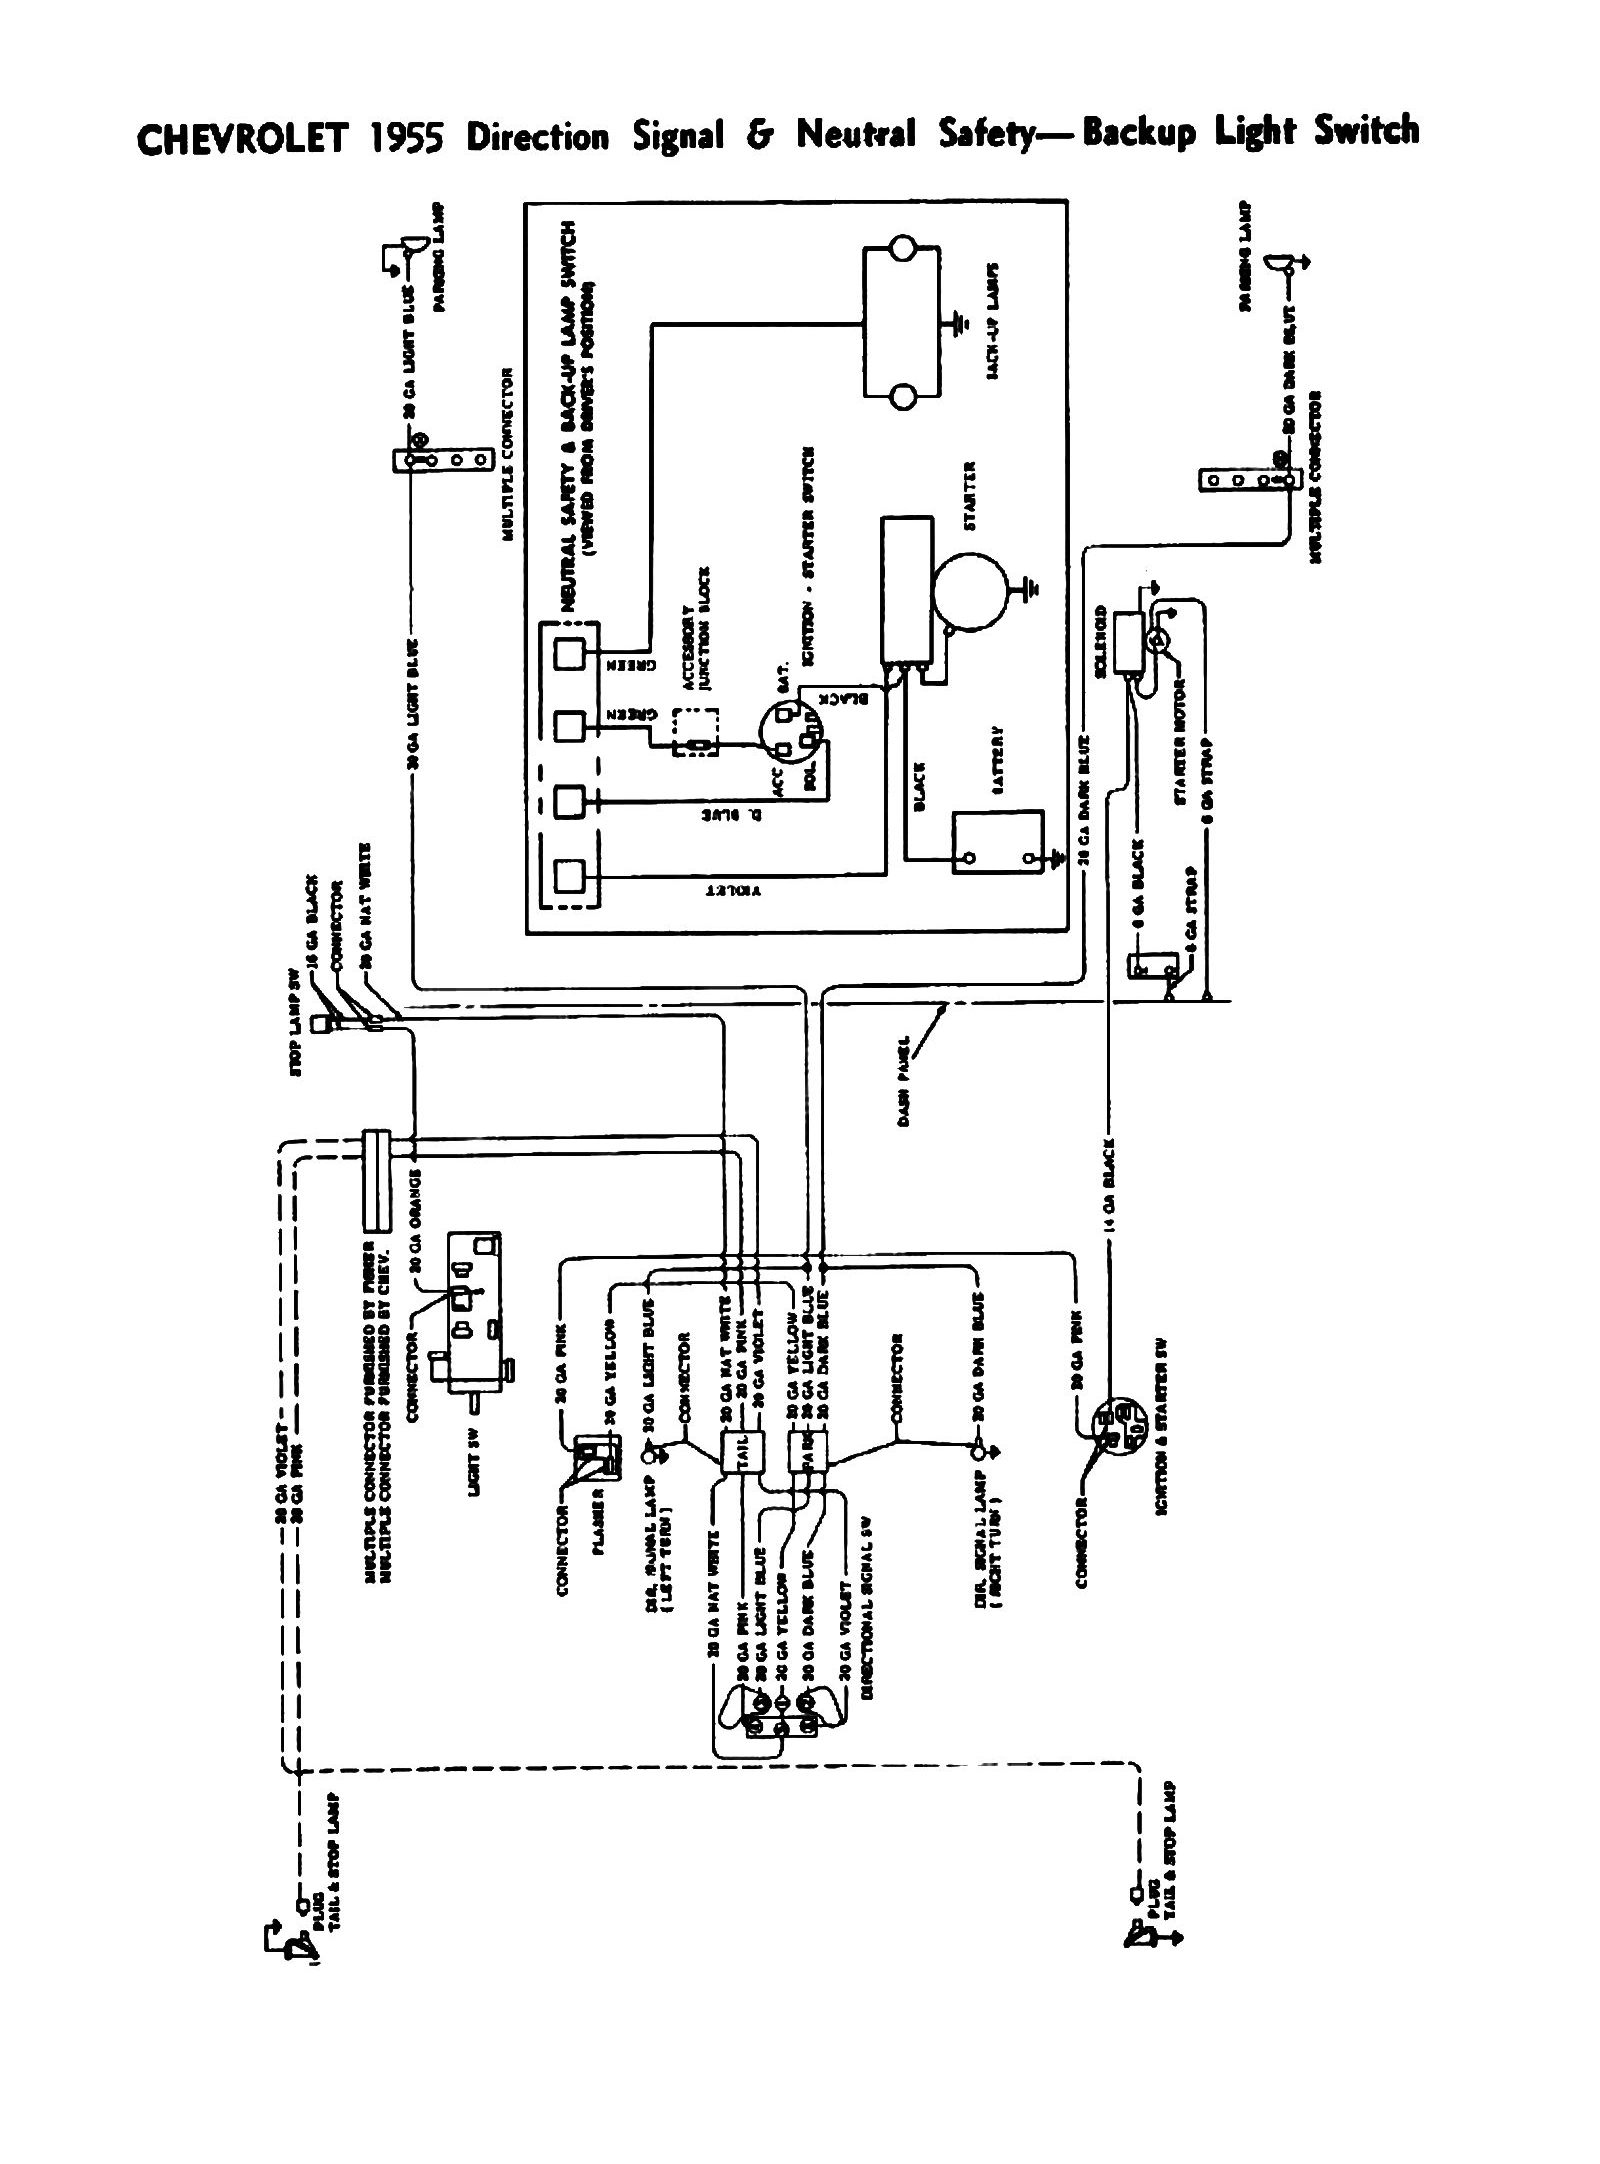 55signal chevy wiring diagrams GM Turn Signal Switch Diagram at bakdesigns.co